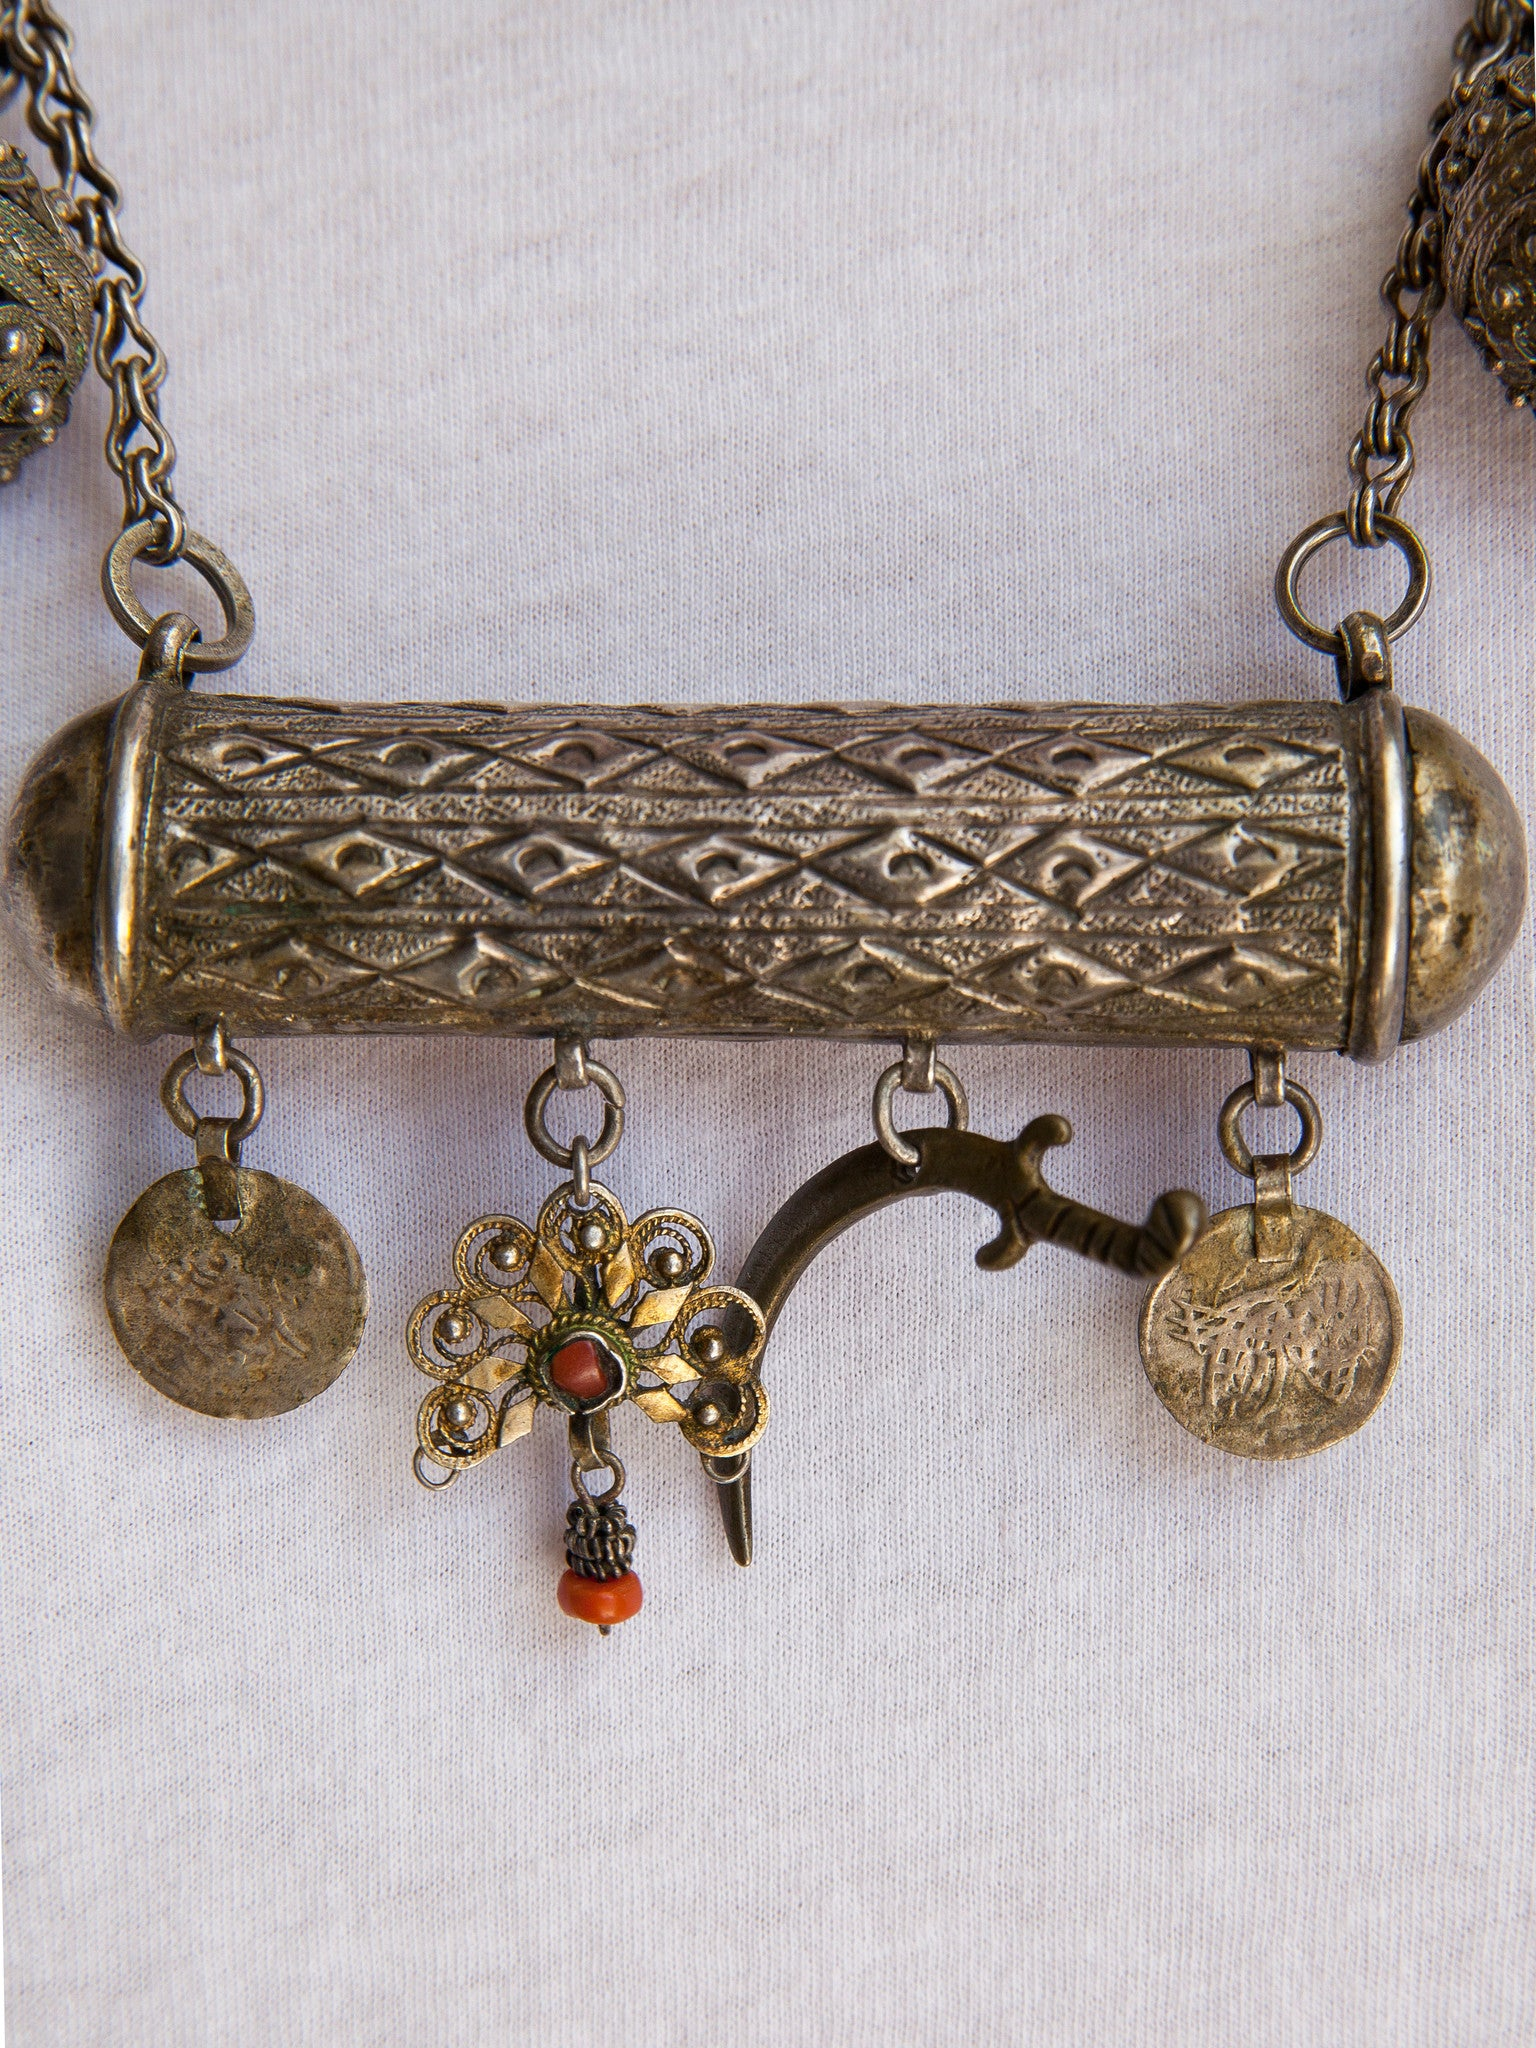 Turkish Amulet Necklace